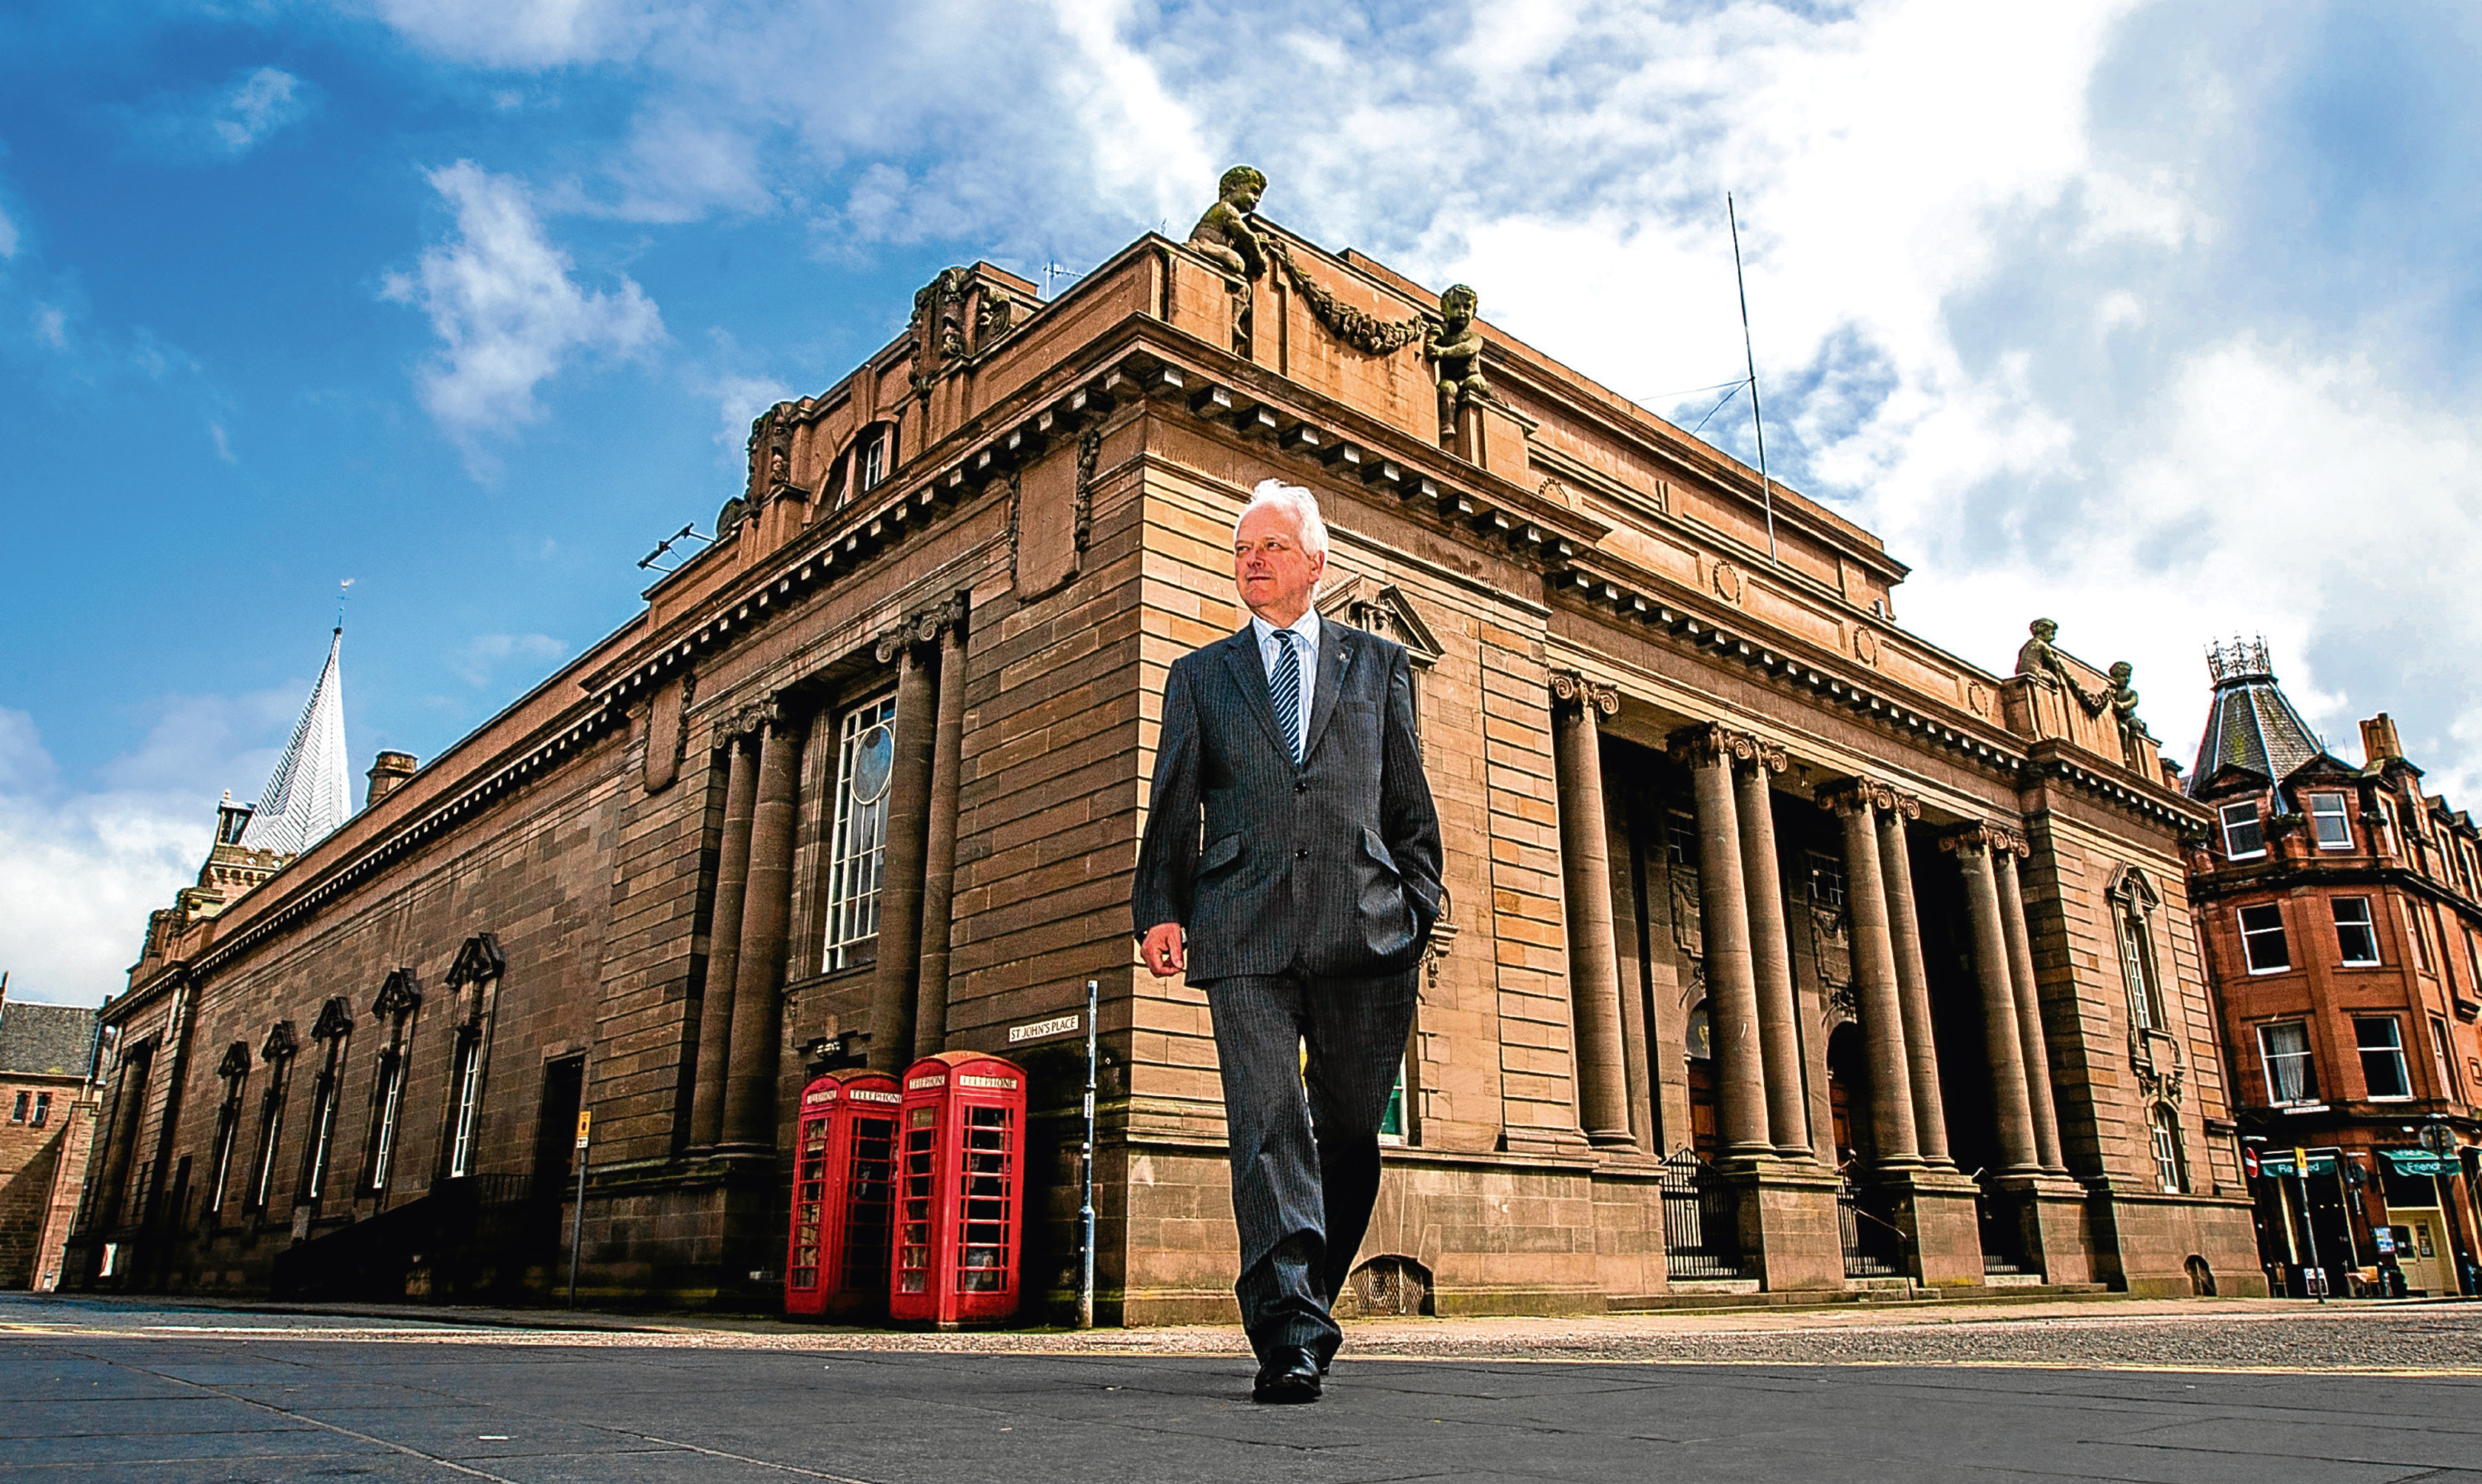 Perth and Kinross Council leader Ian Miller outside Perth city Hall.